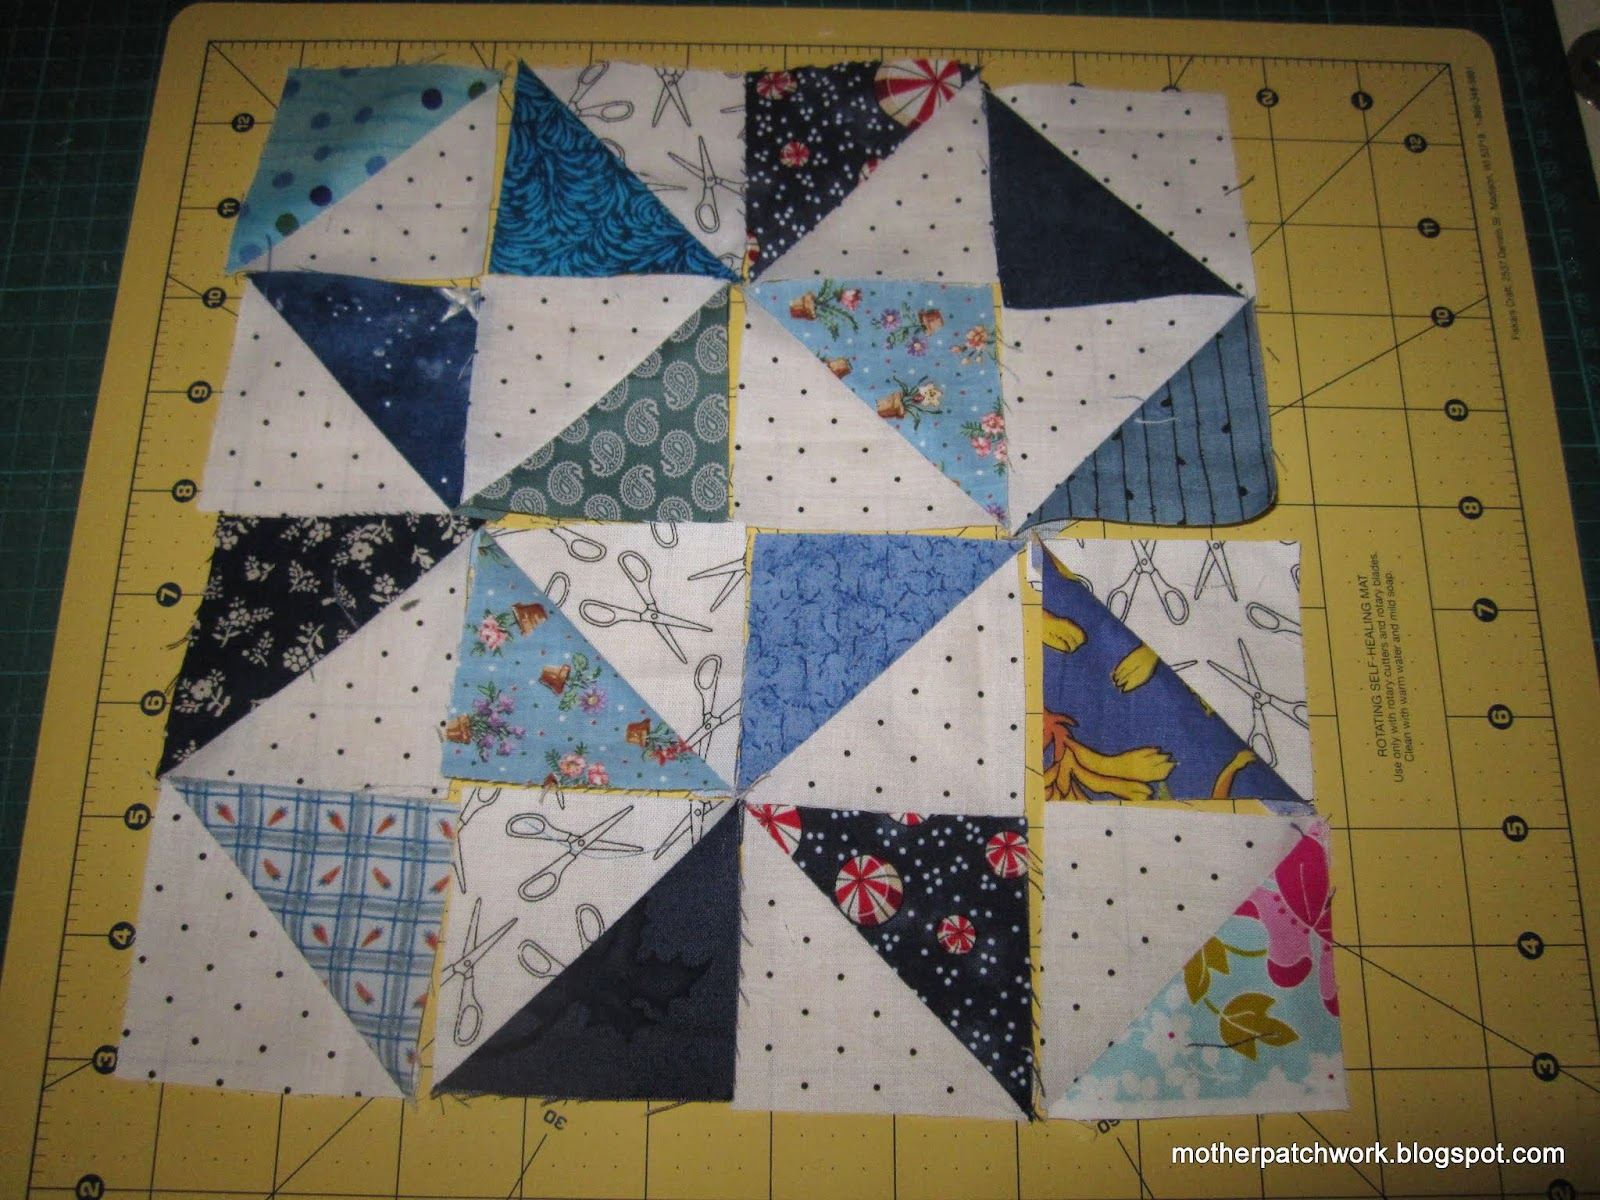 Very Impressive portraiture of Mother Patchwork: Loving log cabin quilts with #836D30 color and 1600x1200 pixels